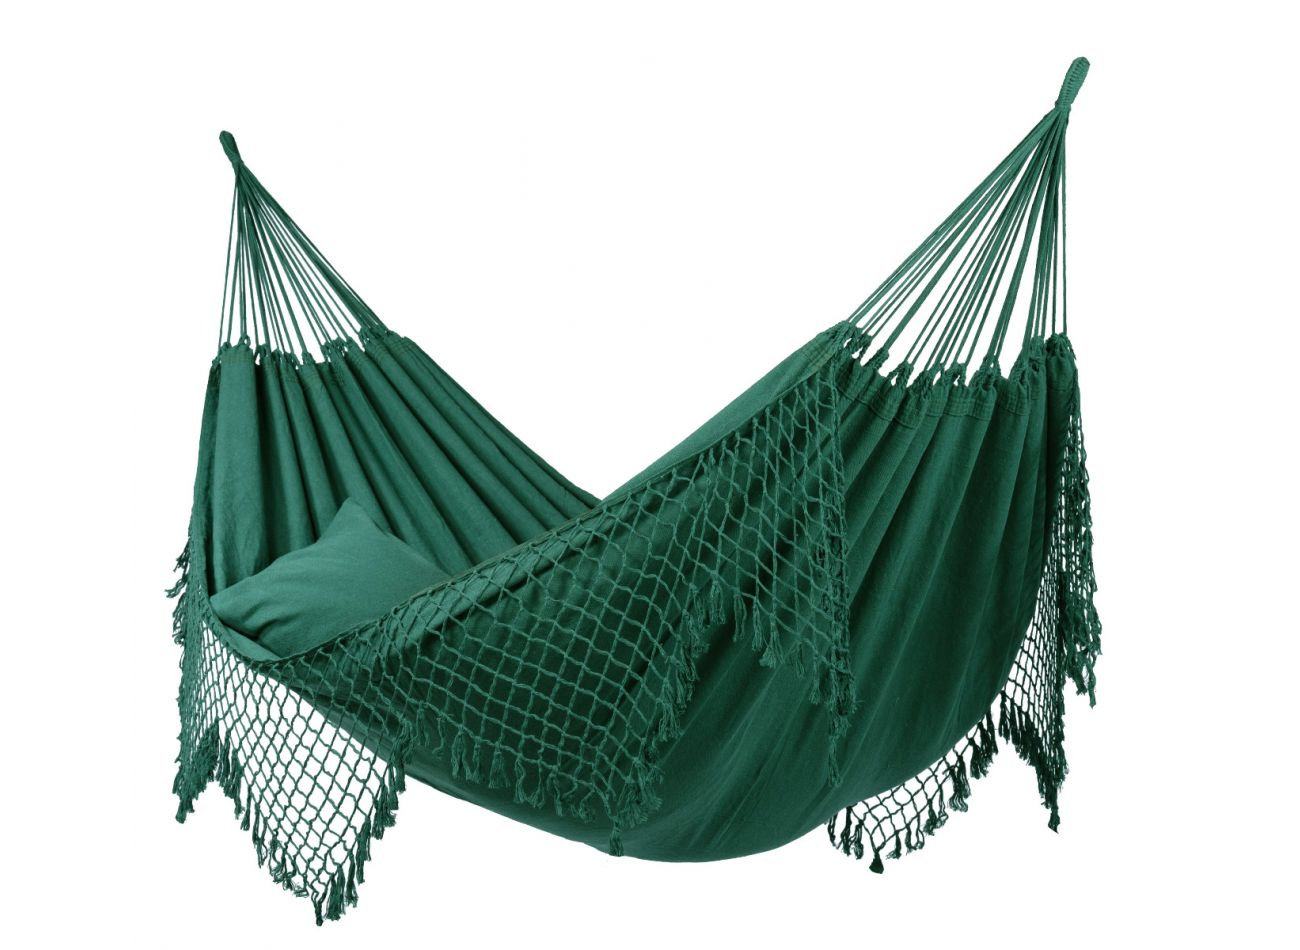 Hangmat 2 Persoons Sublime Green